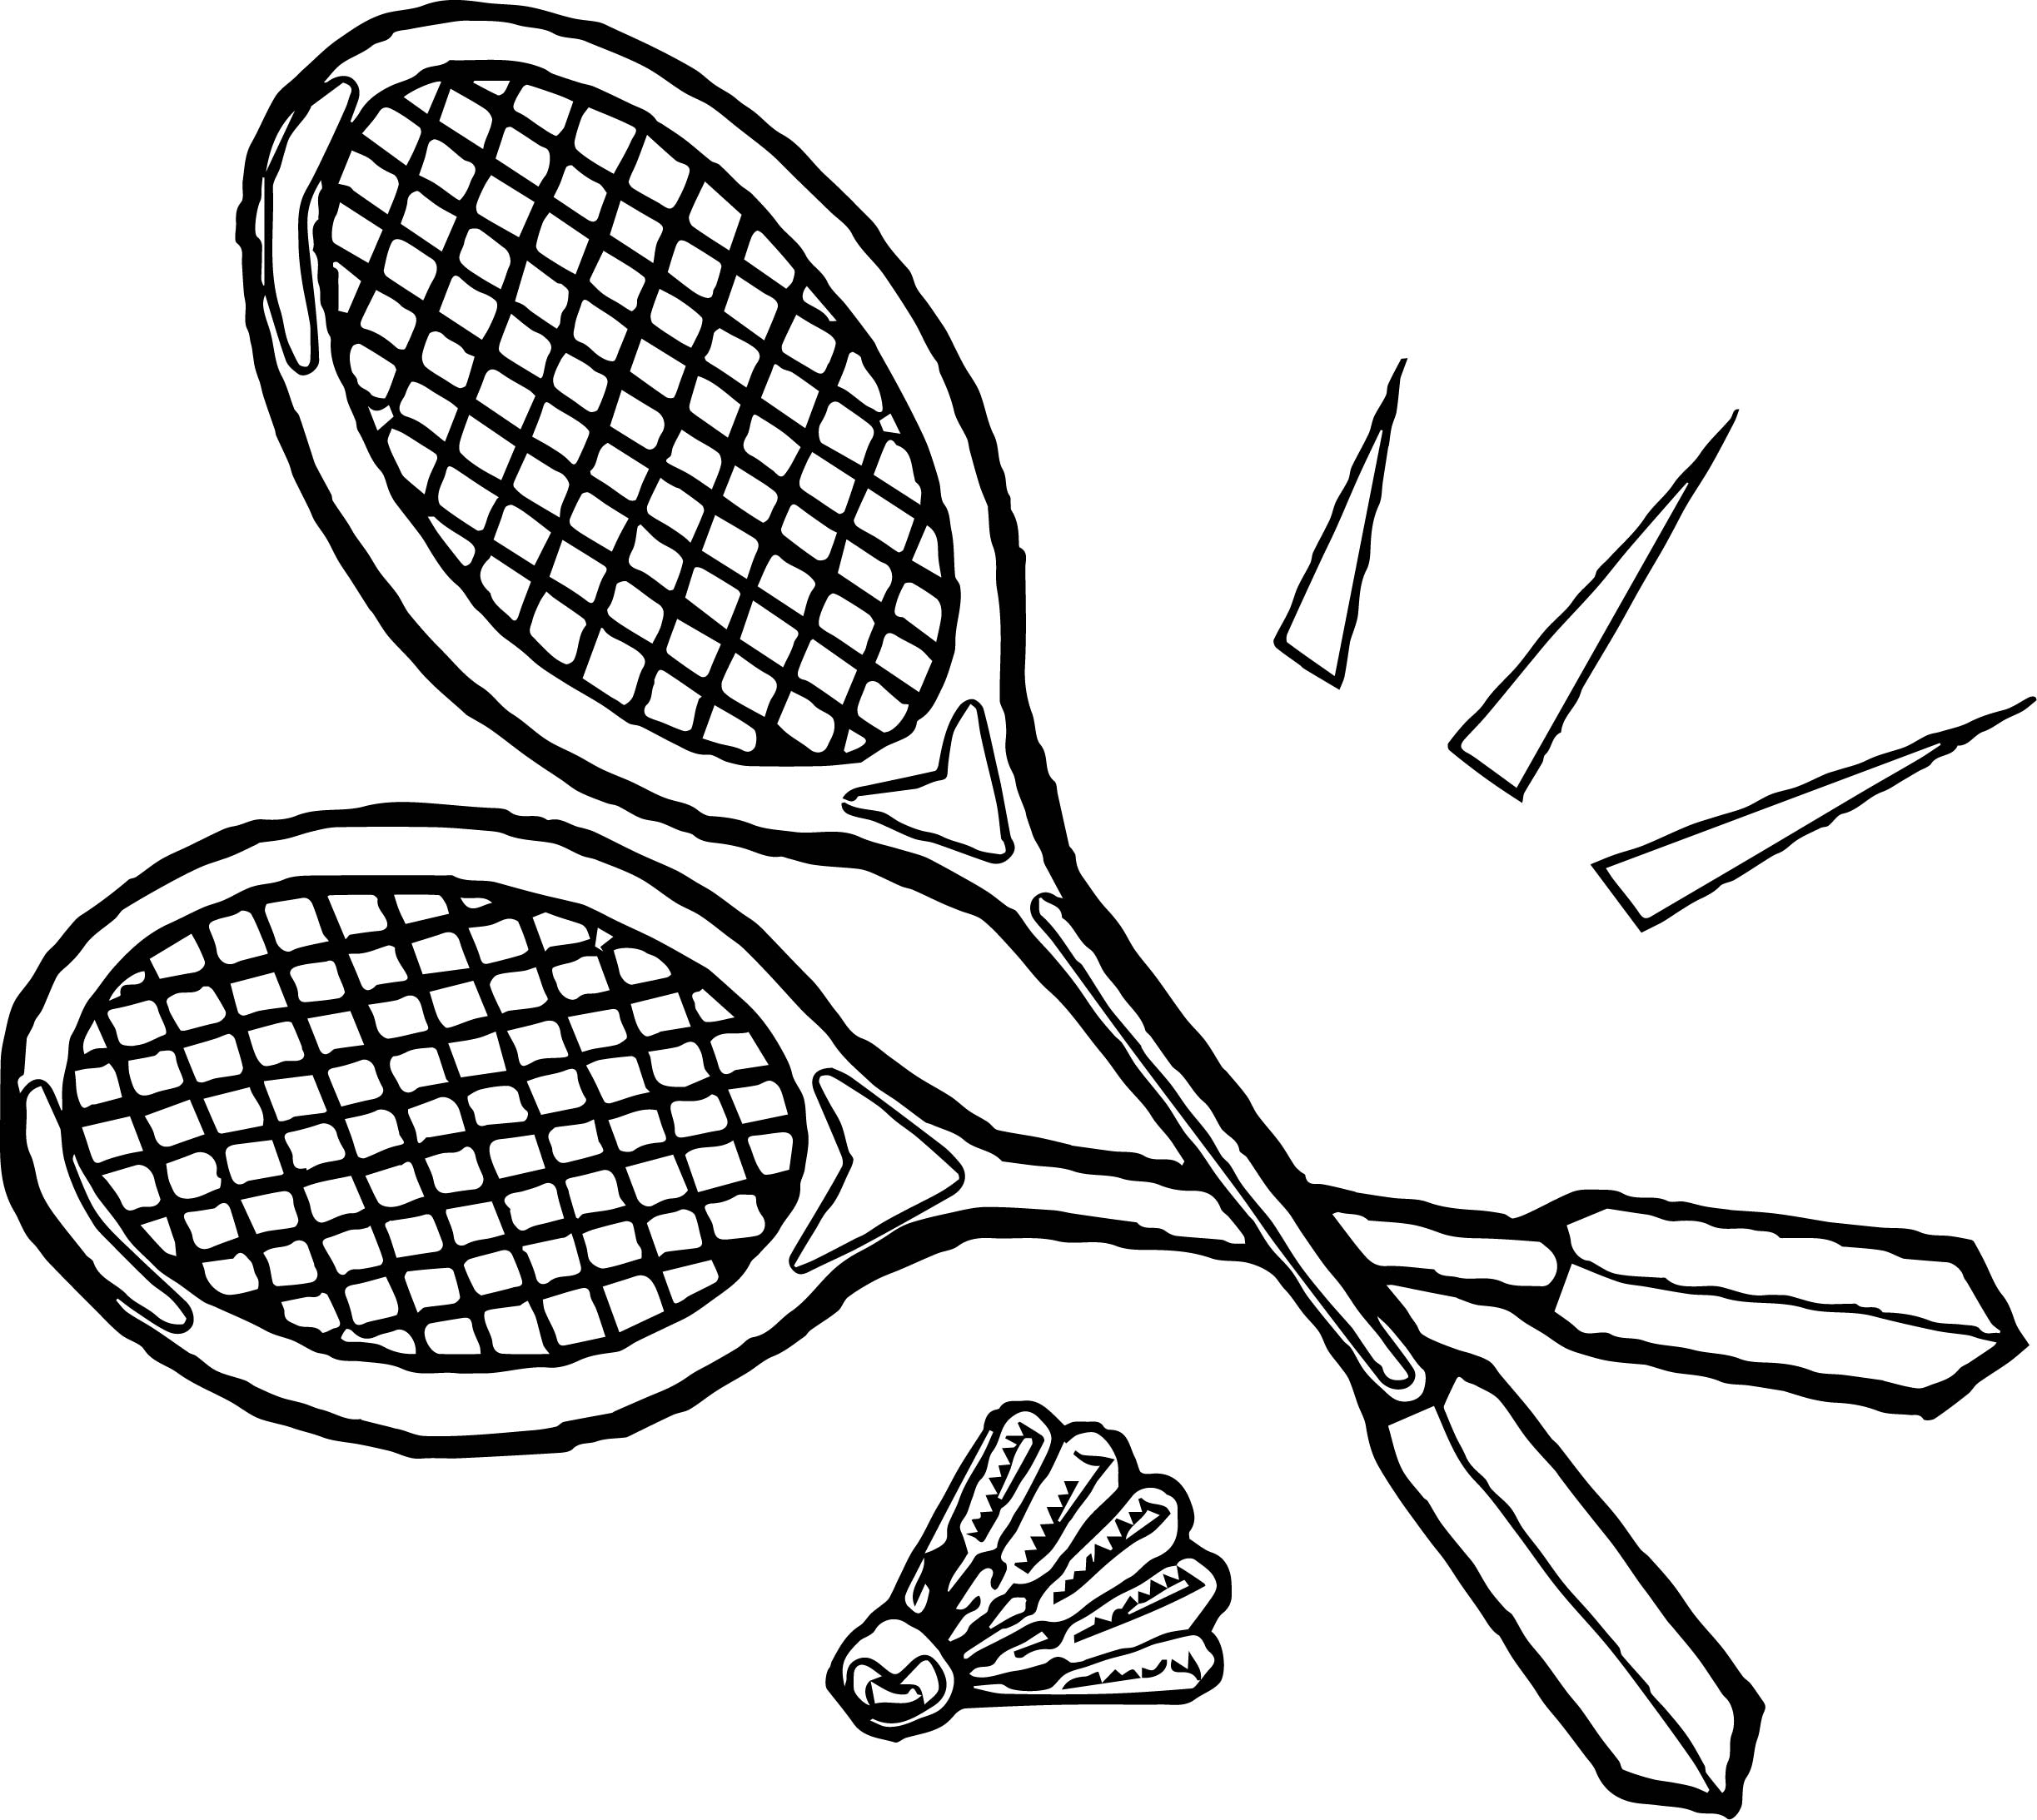 Tennis Racquet Drawing At Getdrawings